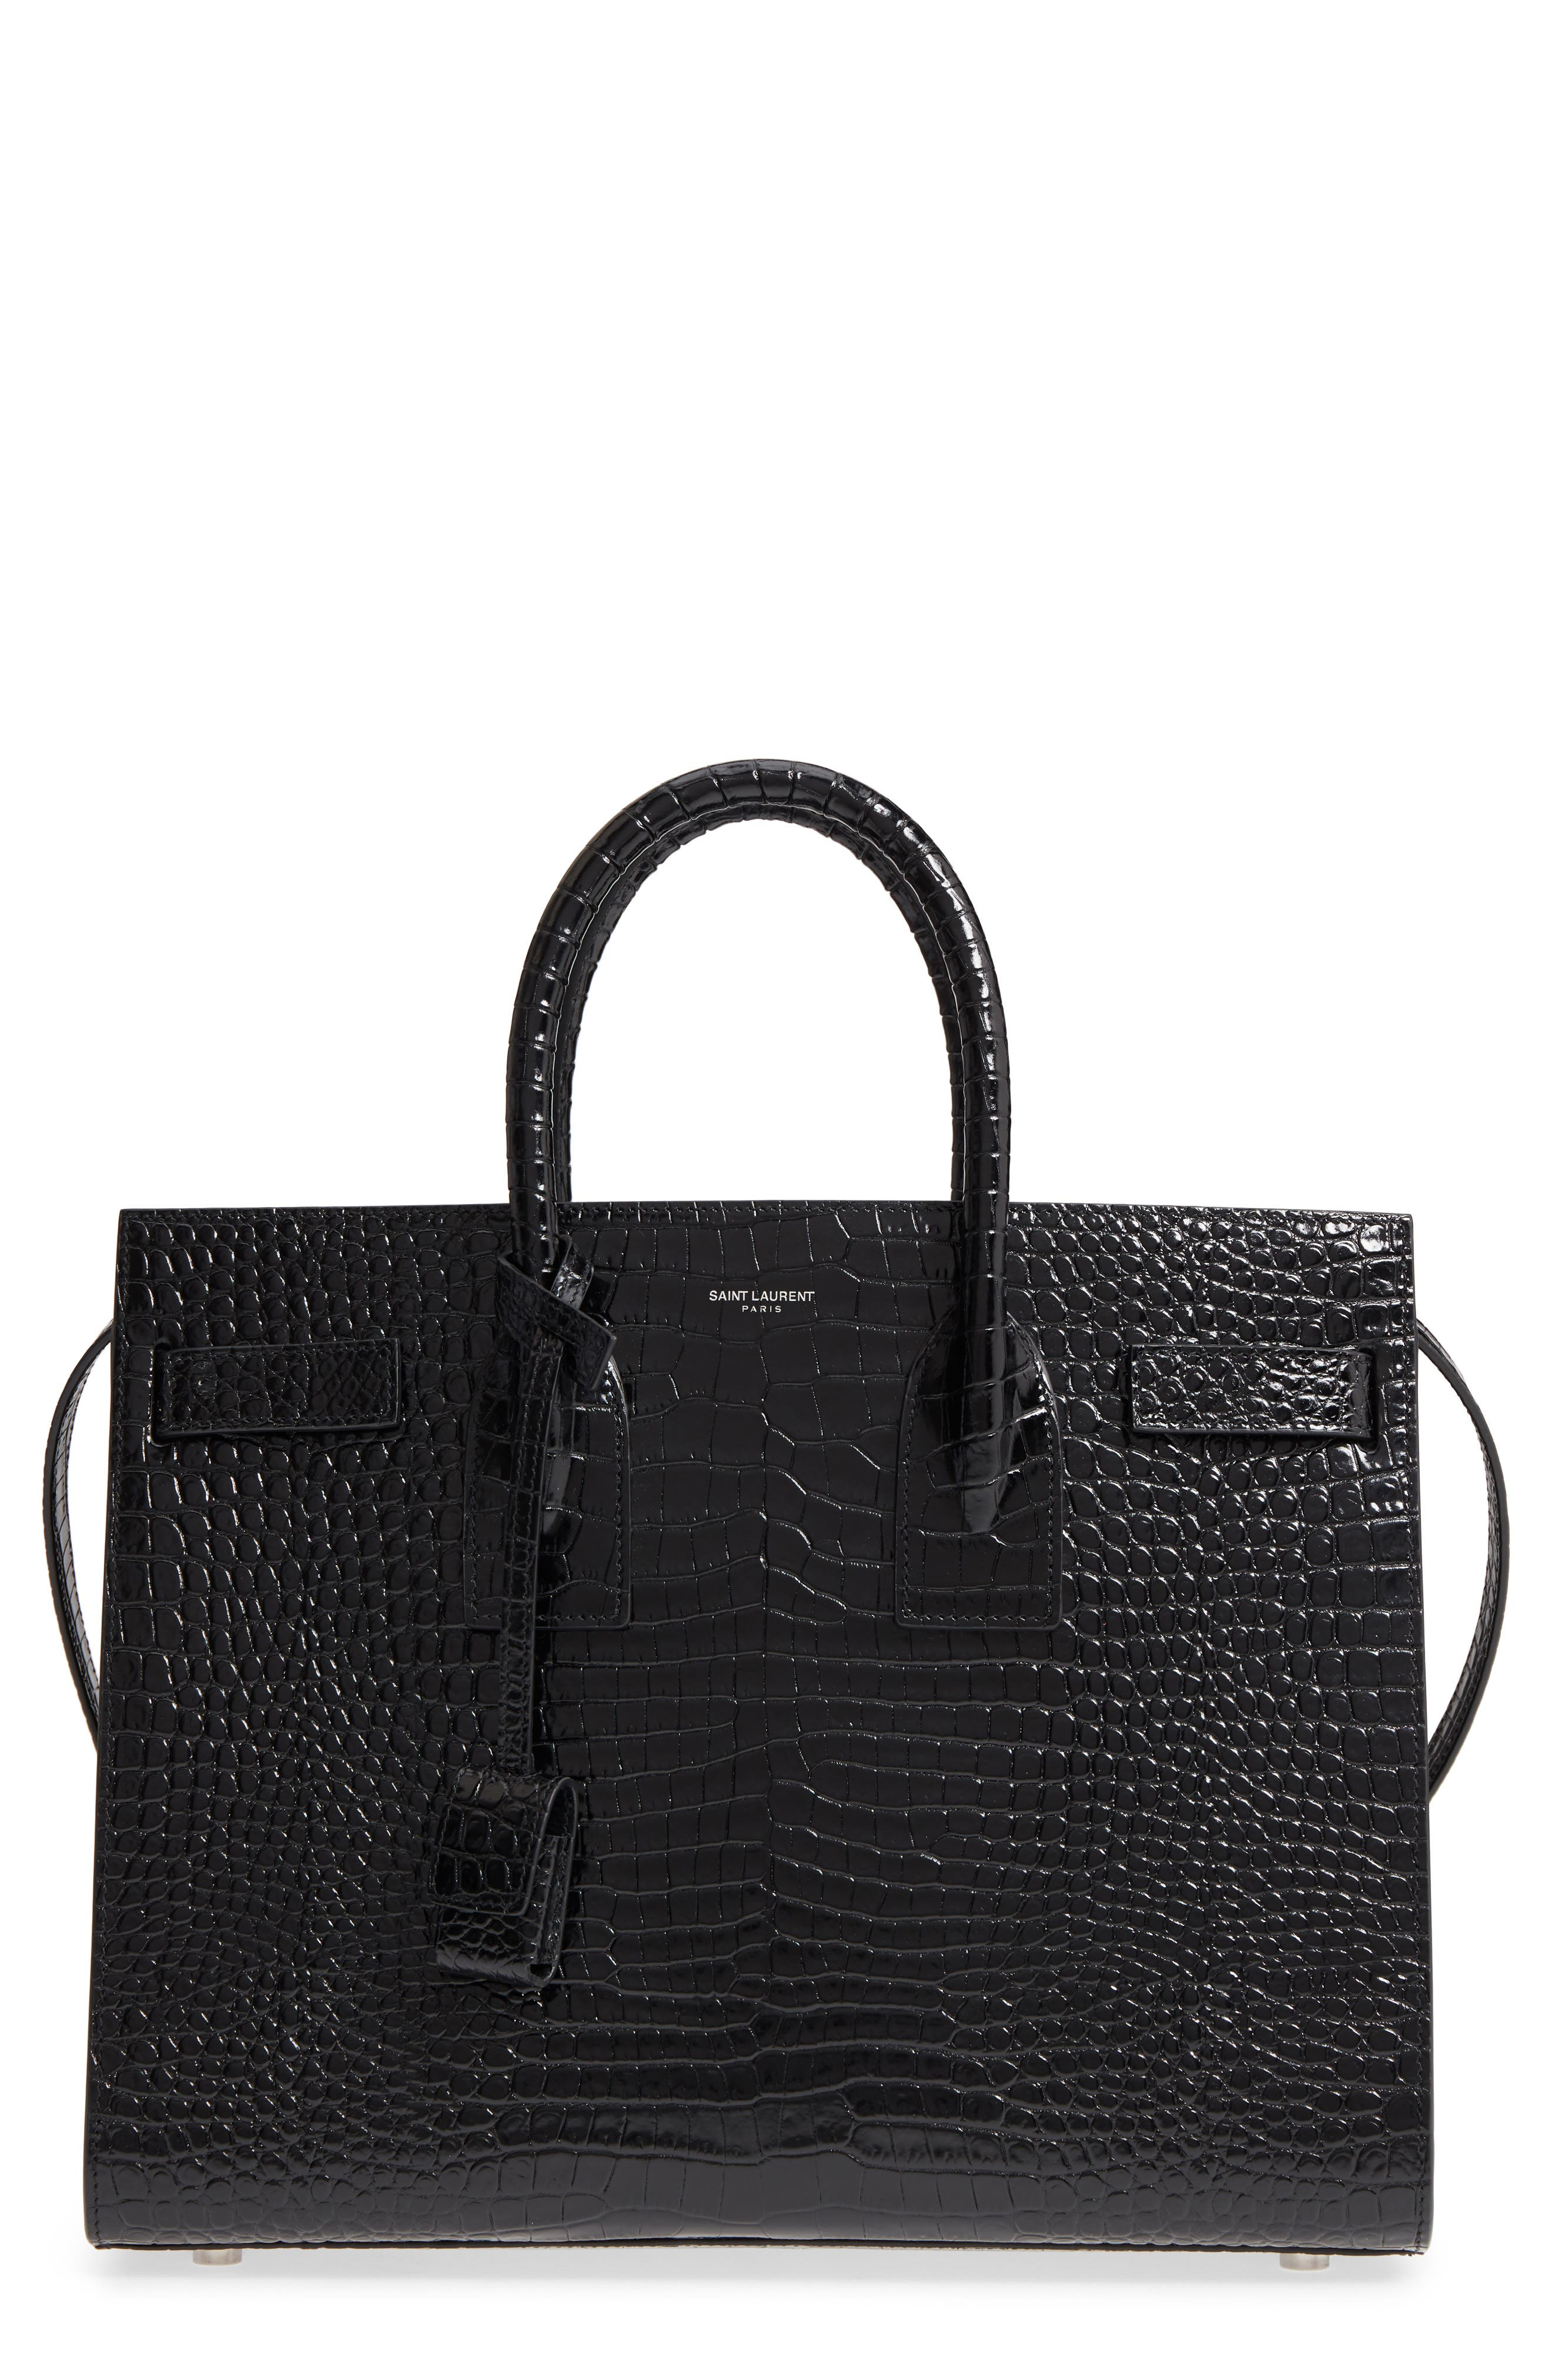 Small Sac de Jour Croc Embossed Calfskin Leather Tote,                             Main thumbnail 1, color,                             NERO/ NERO